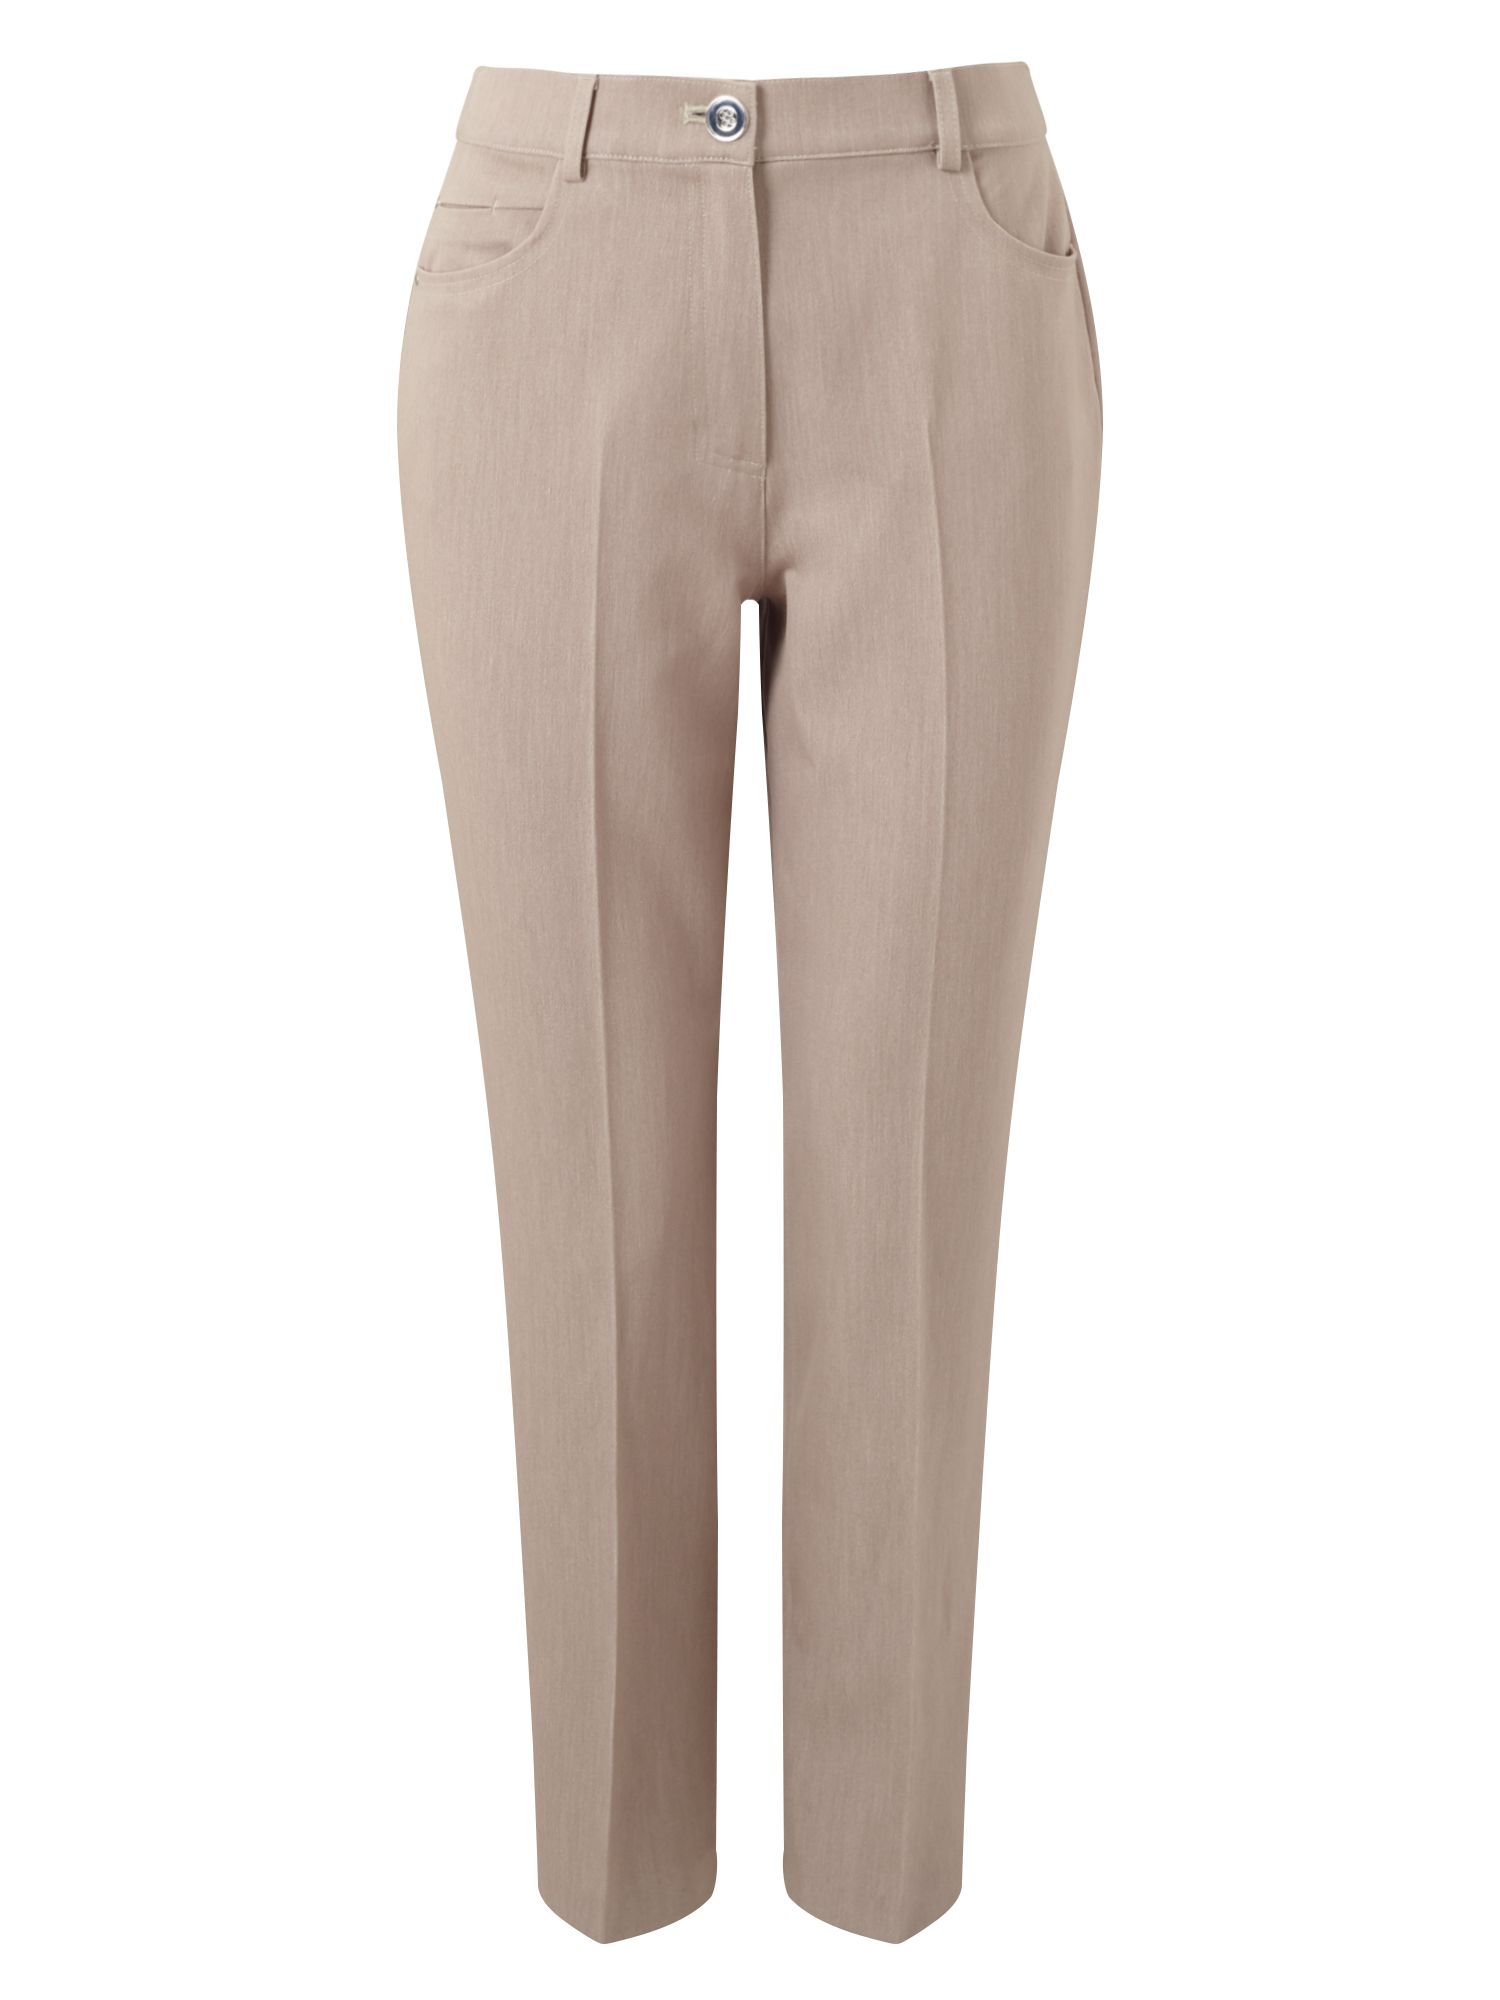 Eastex Straight Jean Trousers, Neutral